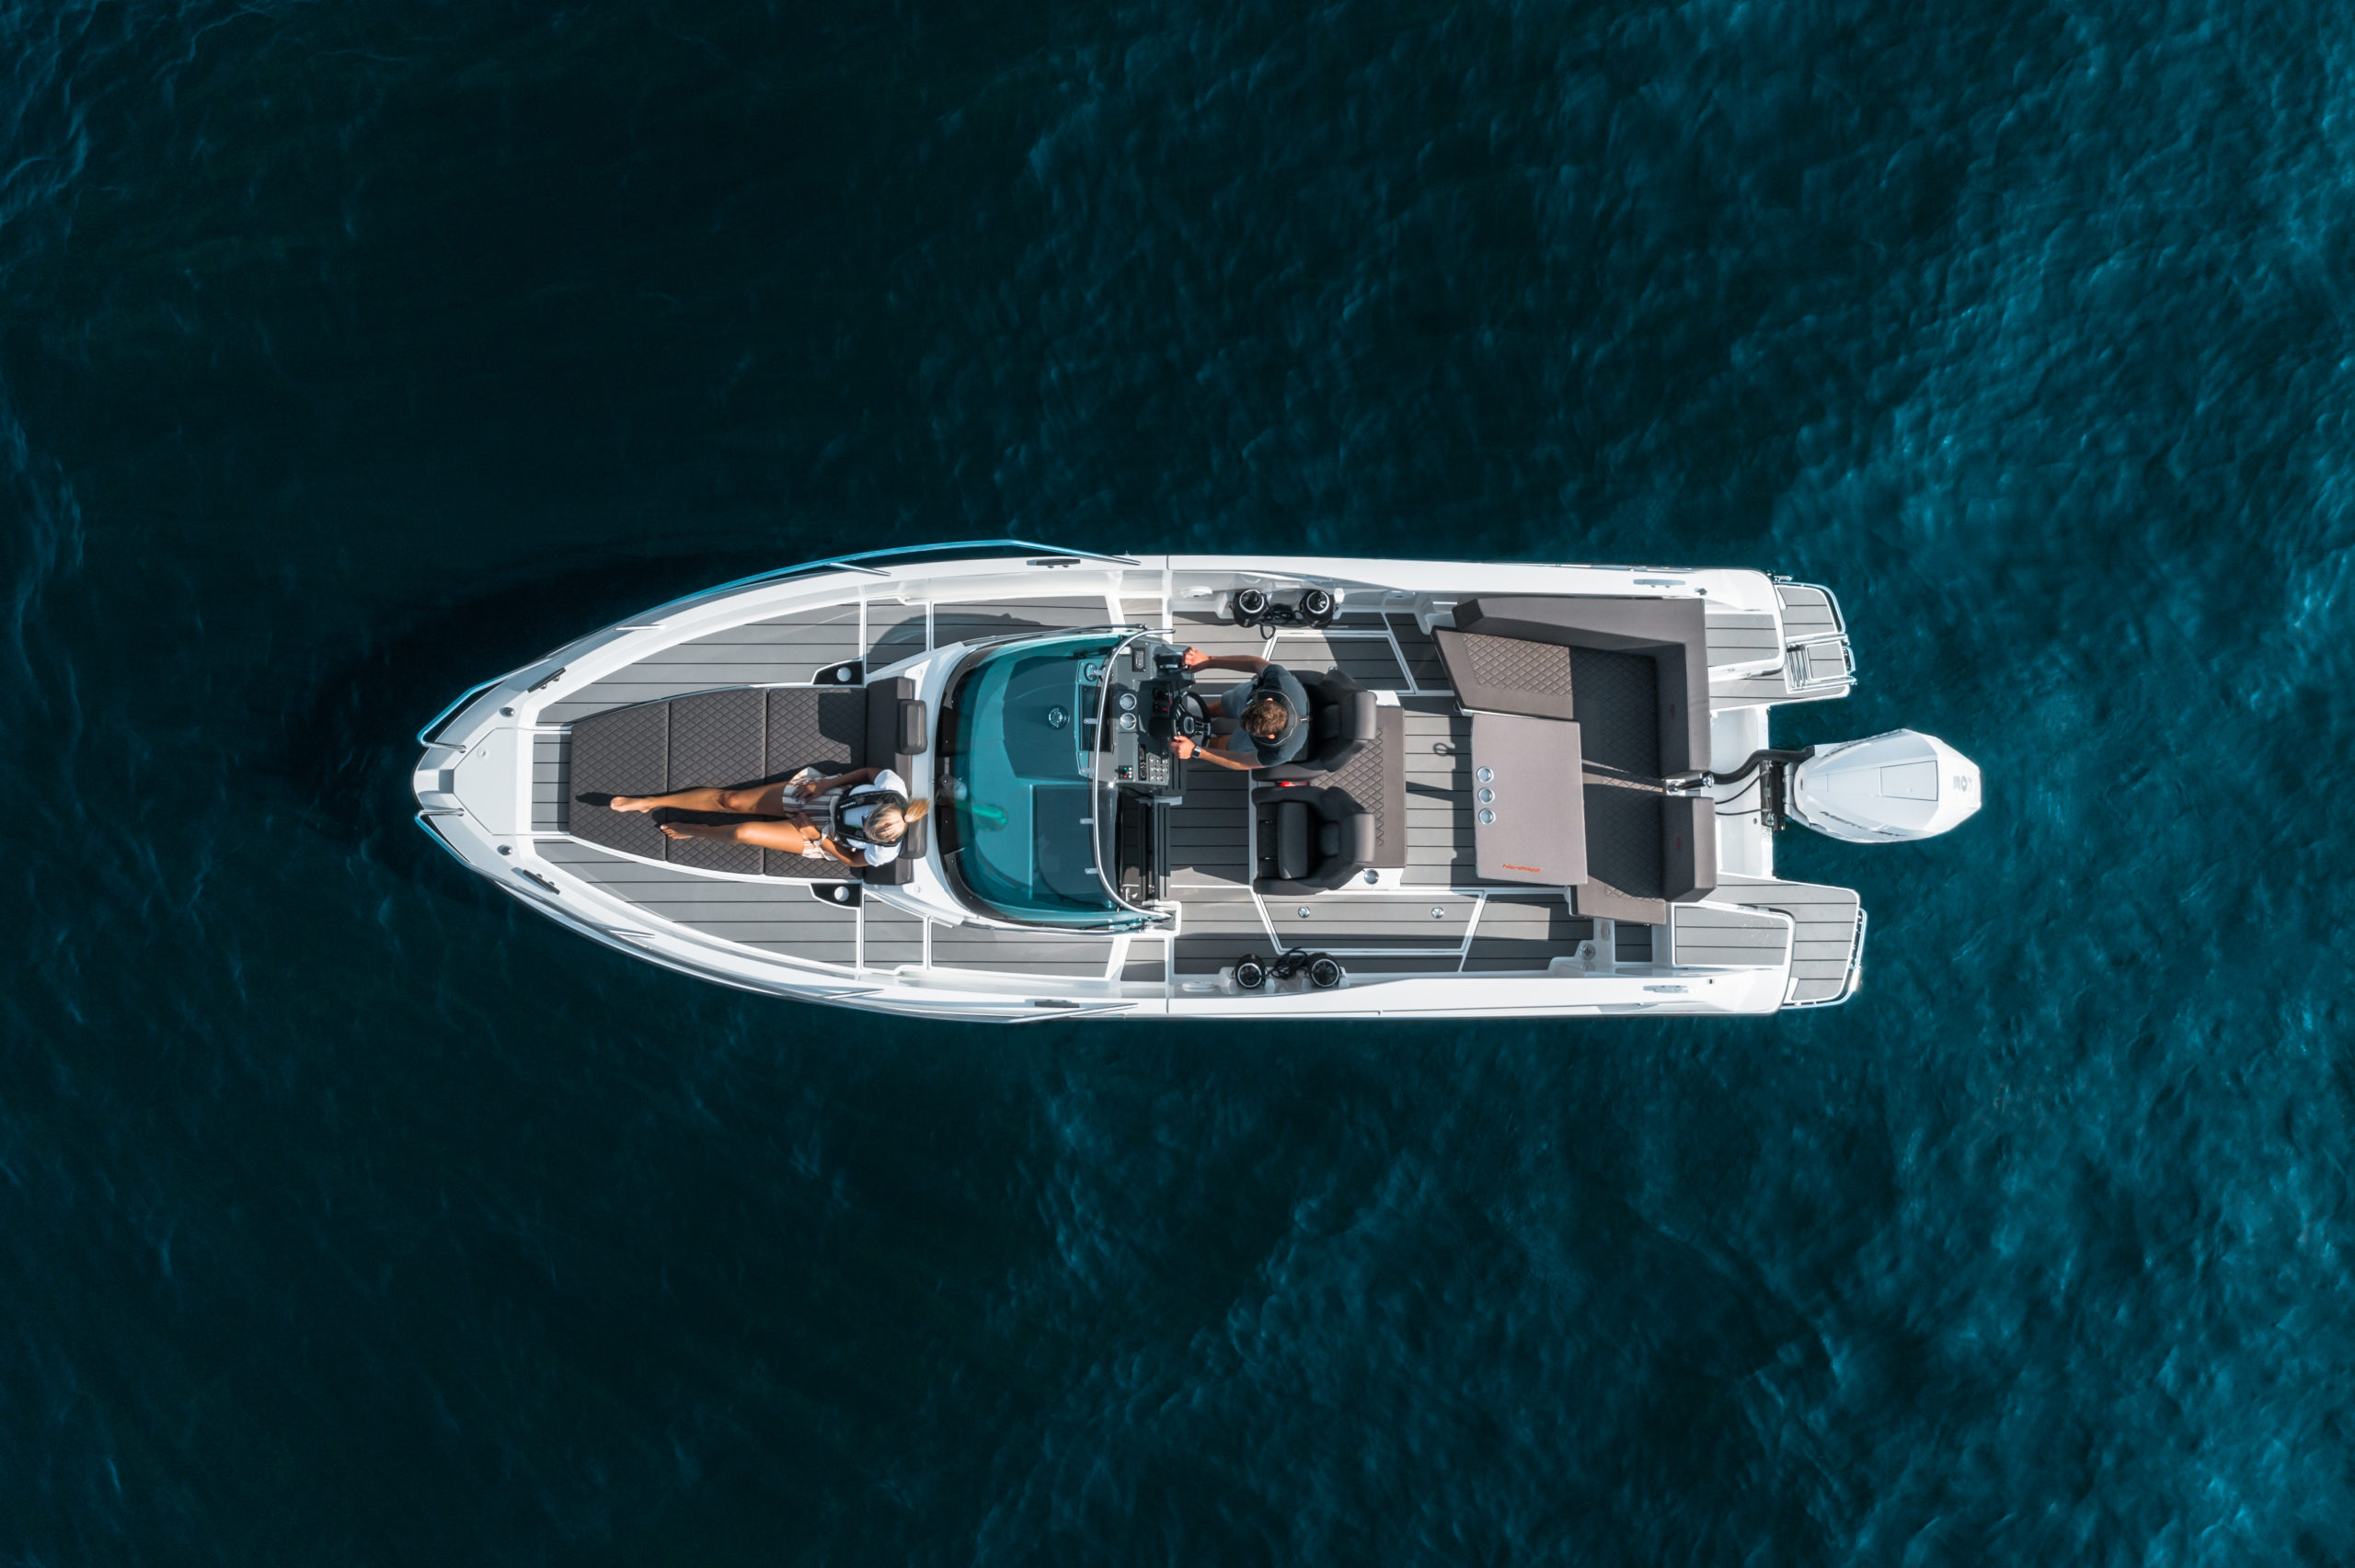 Enduro 805 at sea - boat overview seen from air